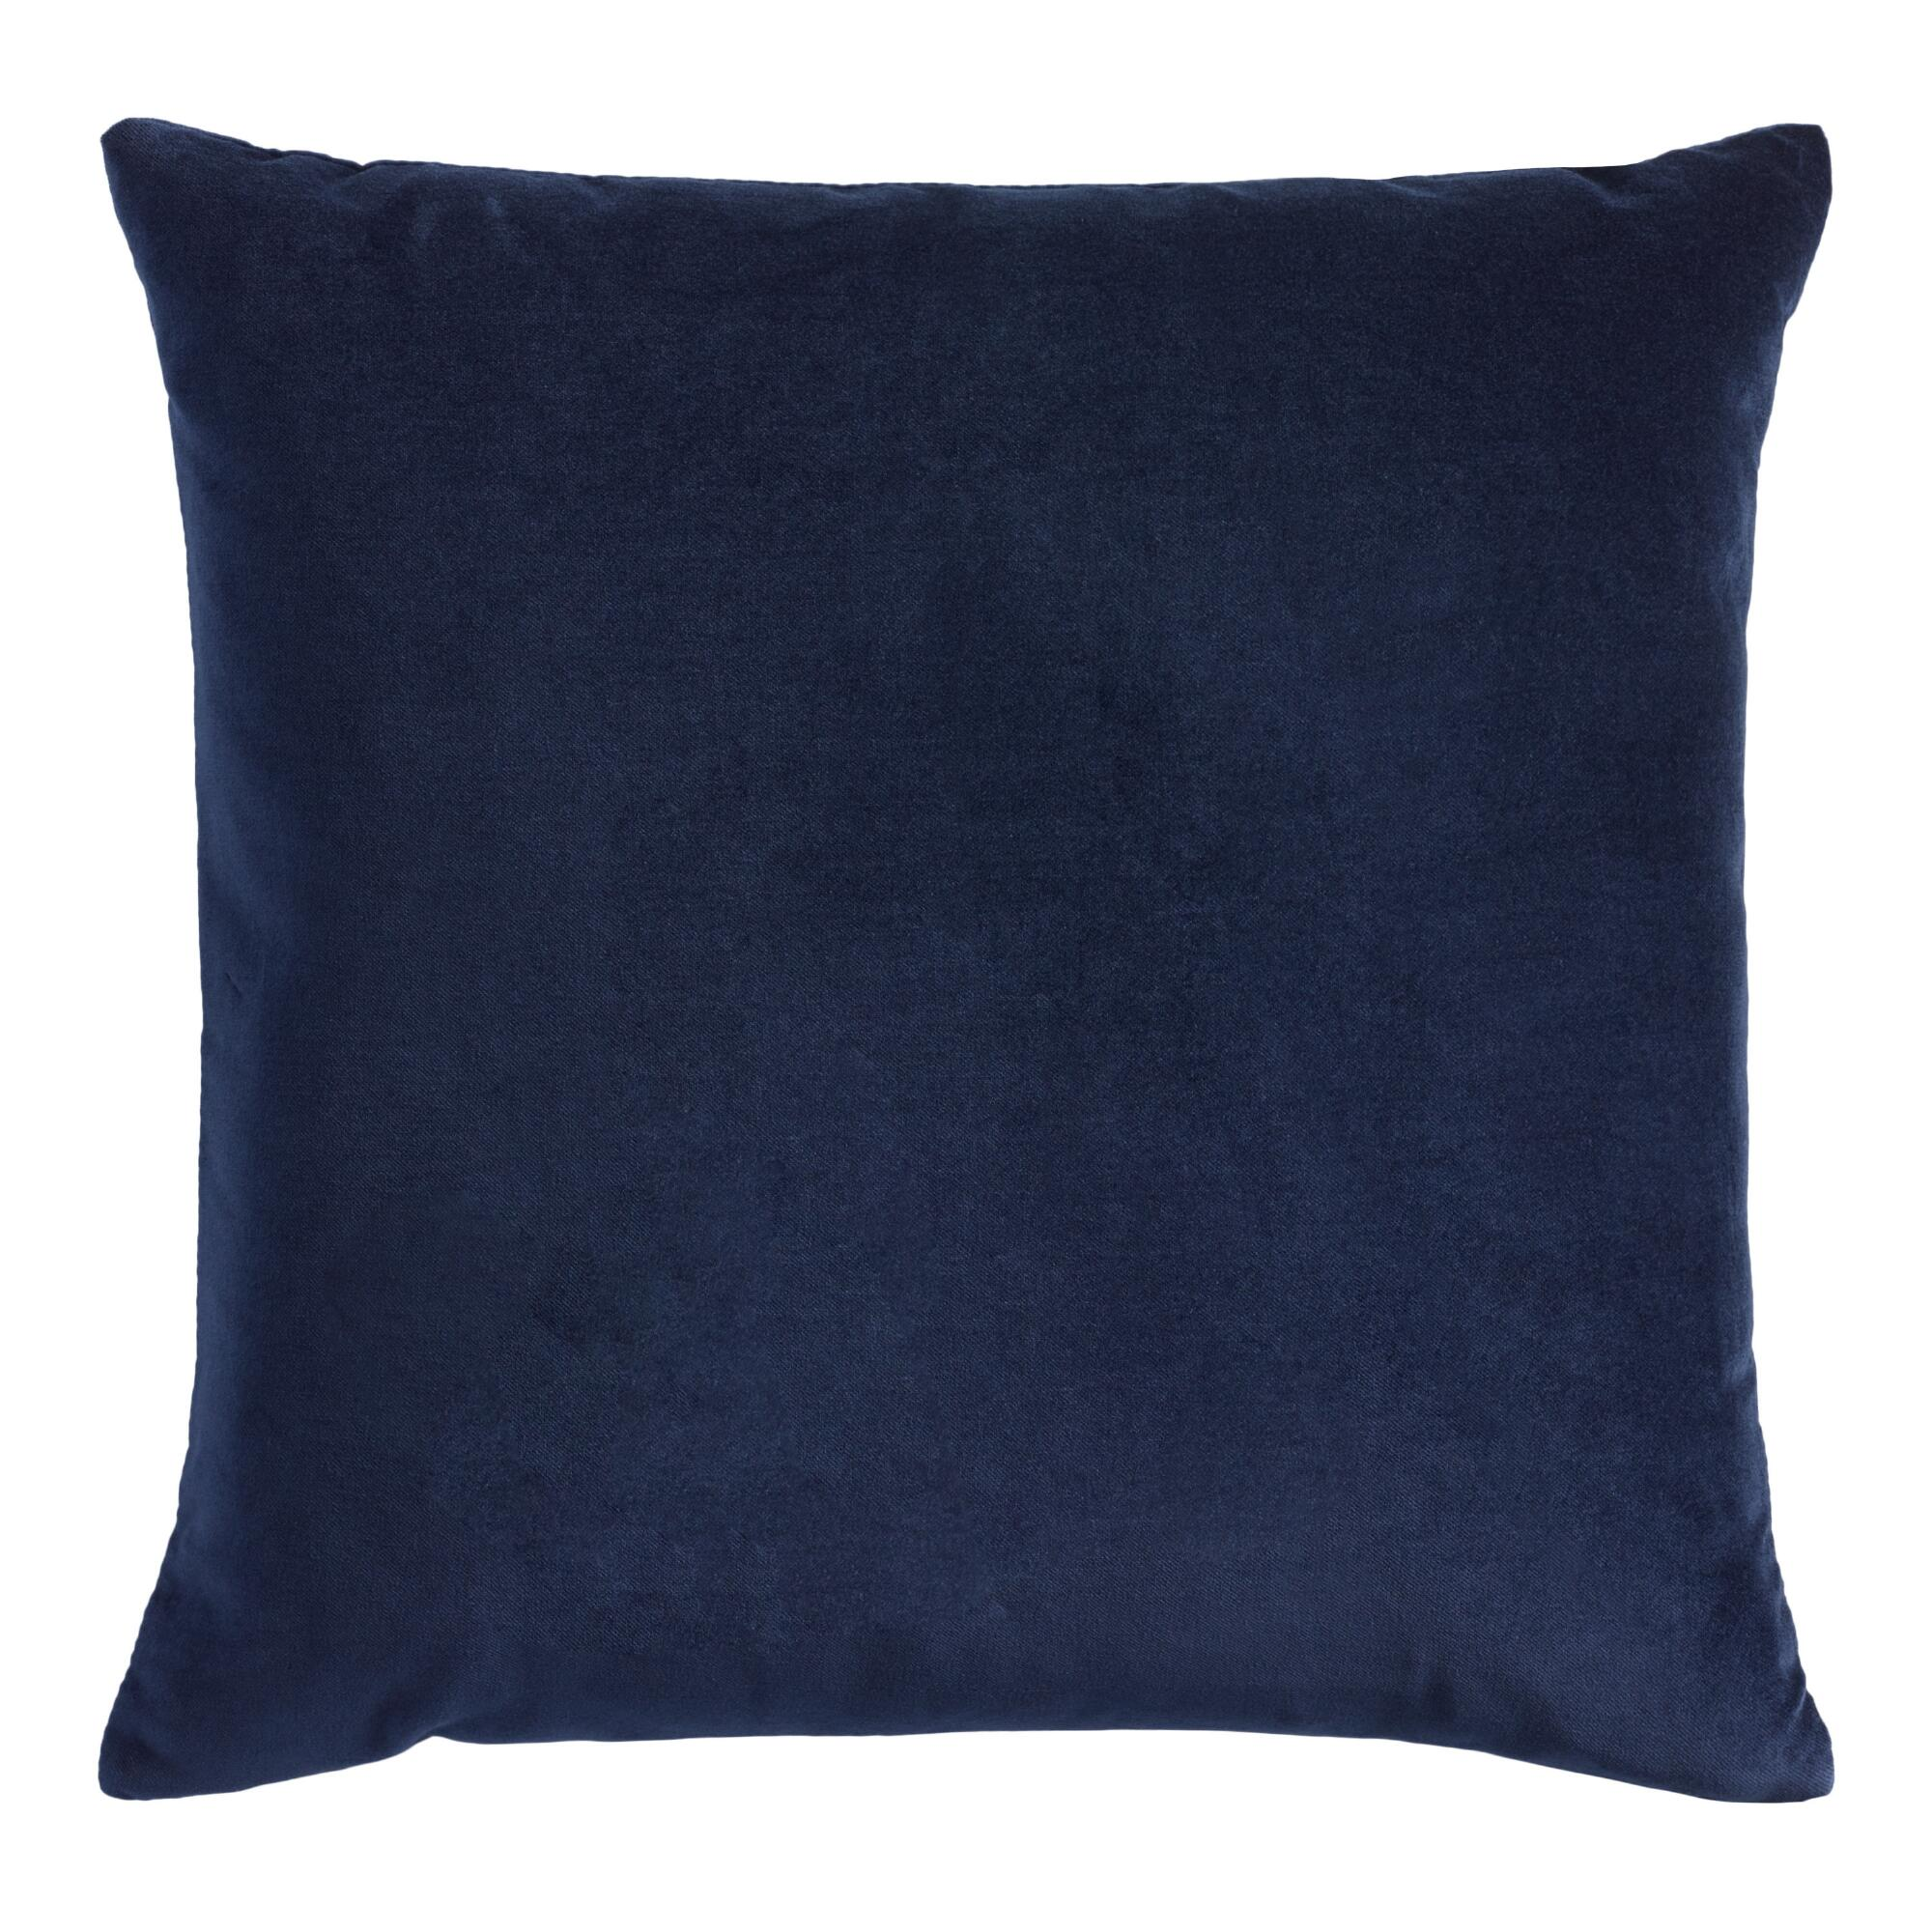 Decorative Pillows In Navy Blue : Navy Blue Velvet Throw Pillow World Market